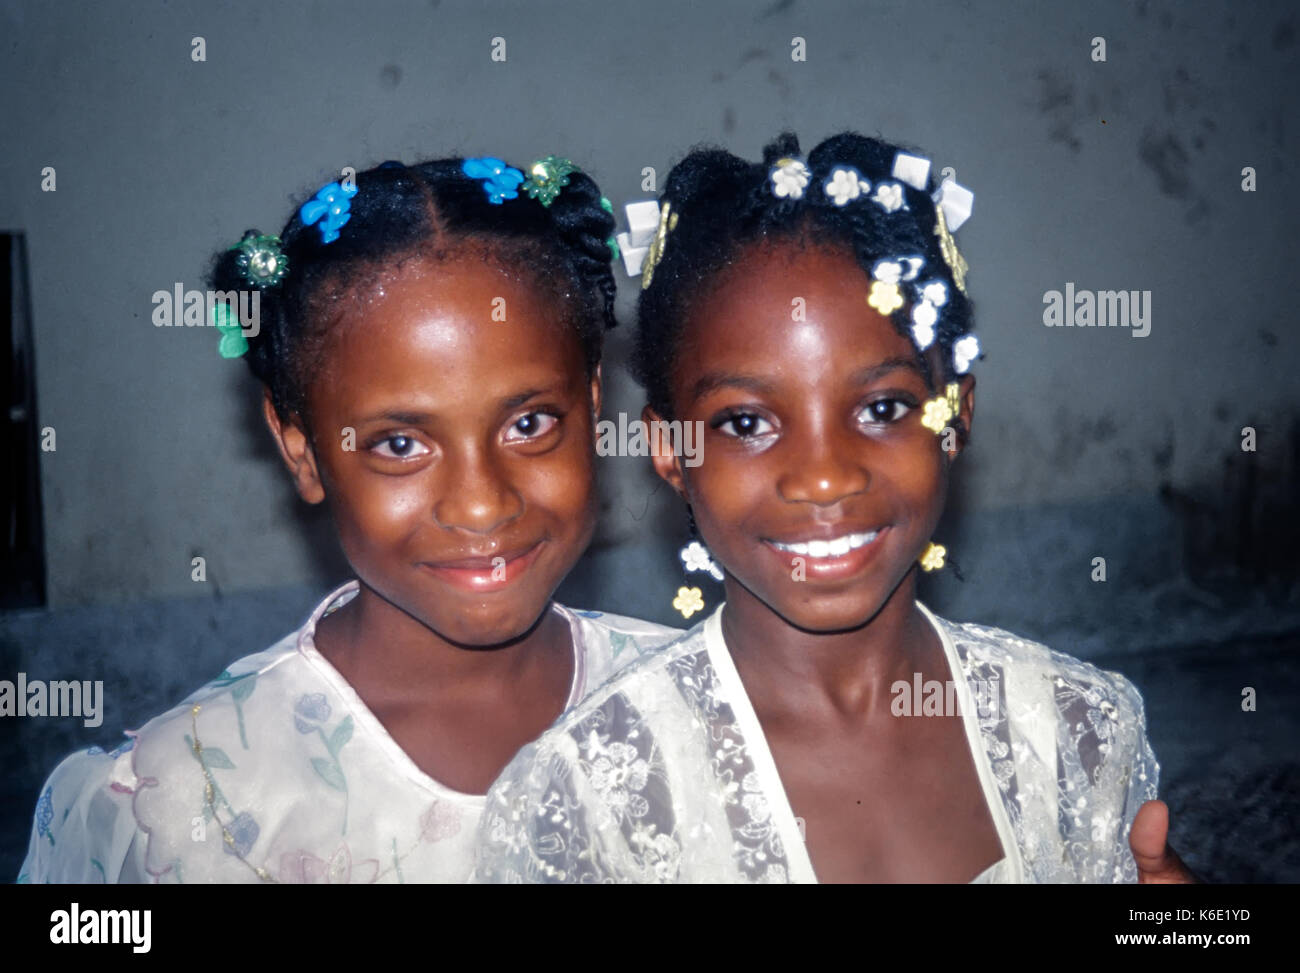 Portrait of two smiling jamaican girls - Stock Image